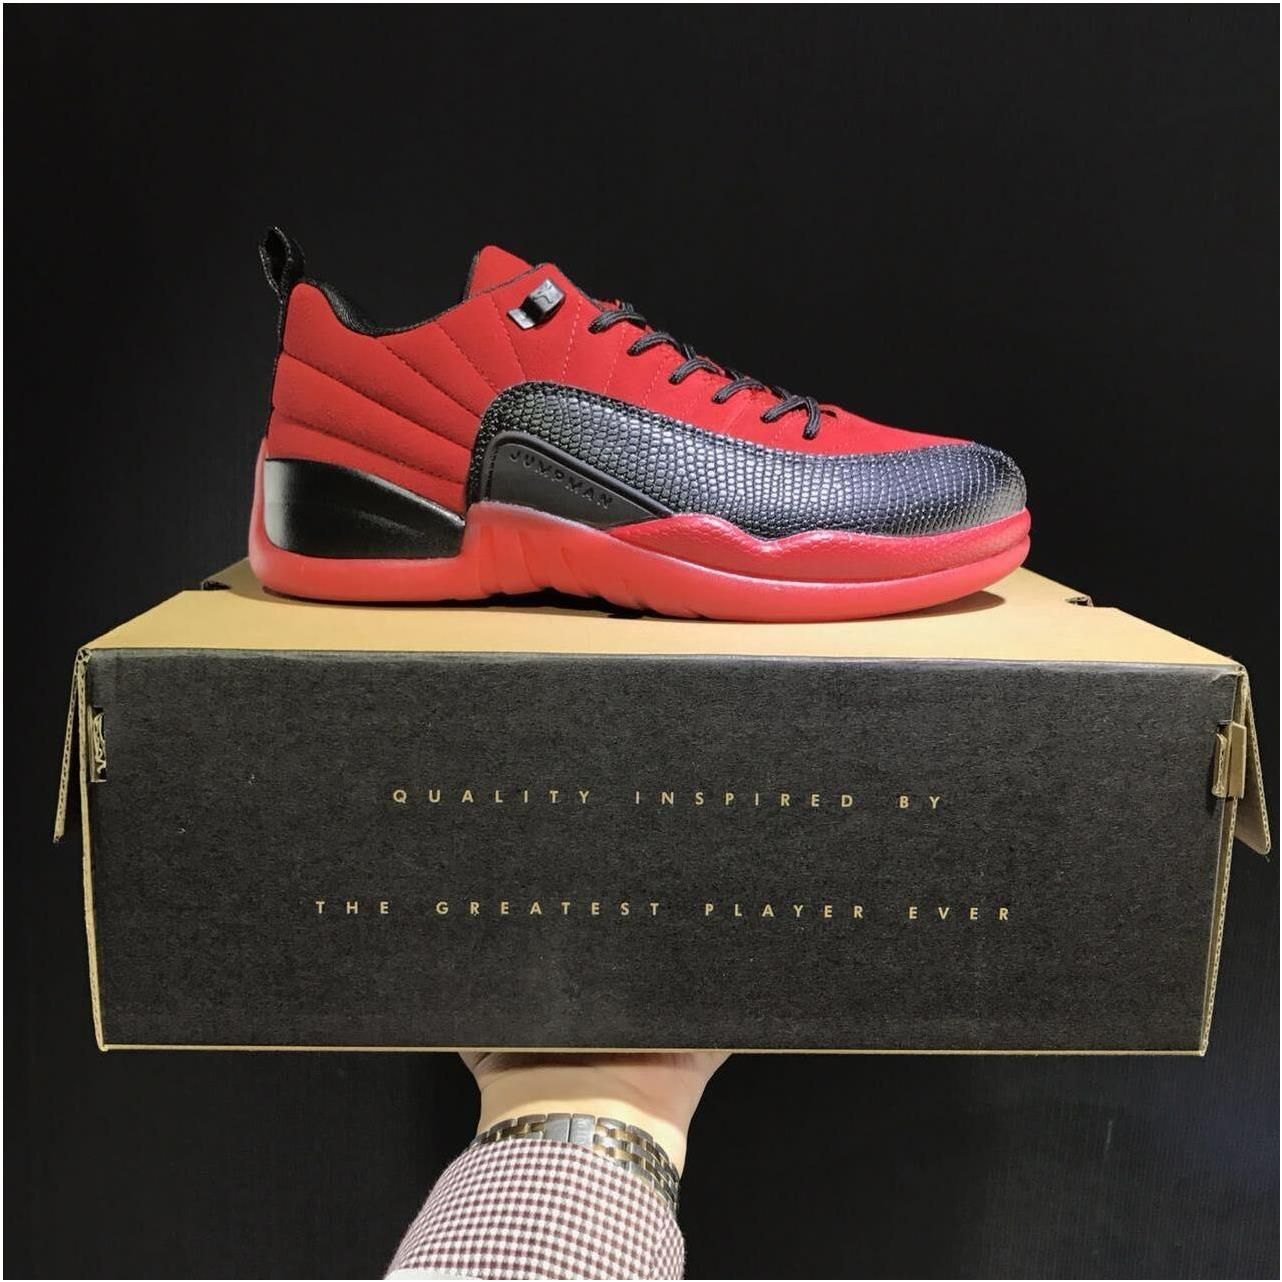 744c677ed Nike Air Jordan Retro XII 12 Low Red Black Men Shoes 3083170 ...